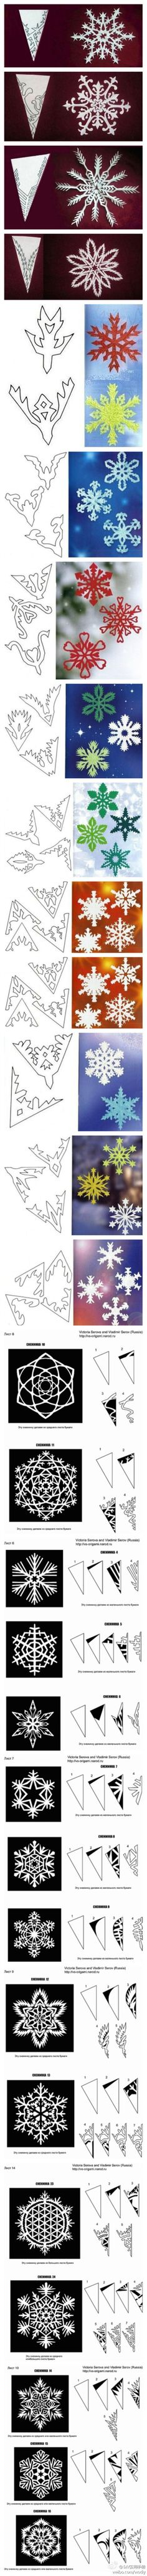 Snowflake paper cutting :)